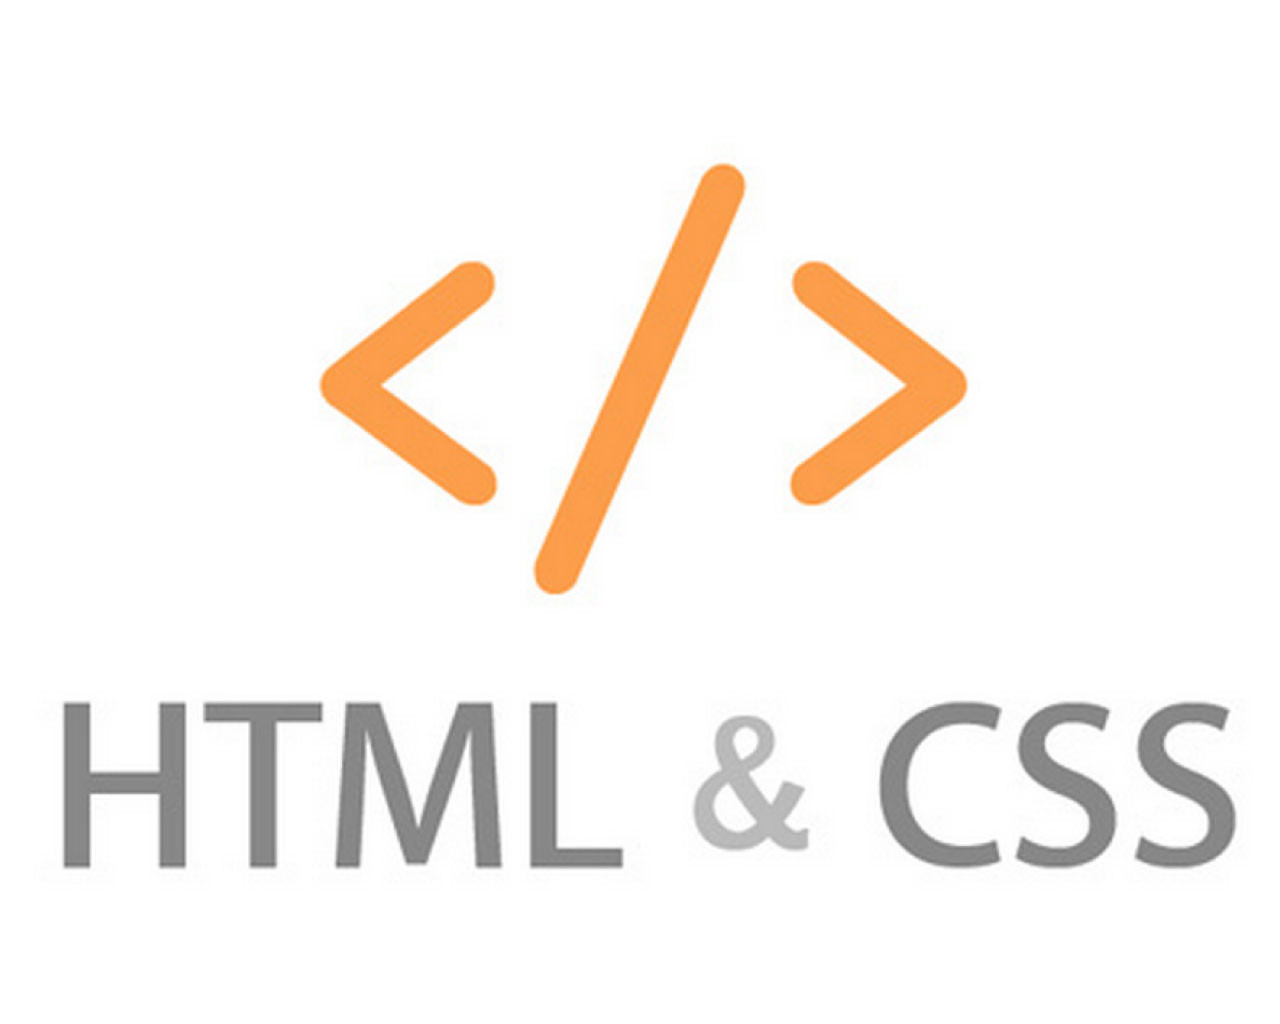 html css This validator checks the markup validity of web documents in html, xhtml, smil, mathml, etc if you wish to validate specific content such as rss/atom feeds or css stylesheets, mobileok content, or to find broken links.